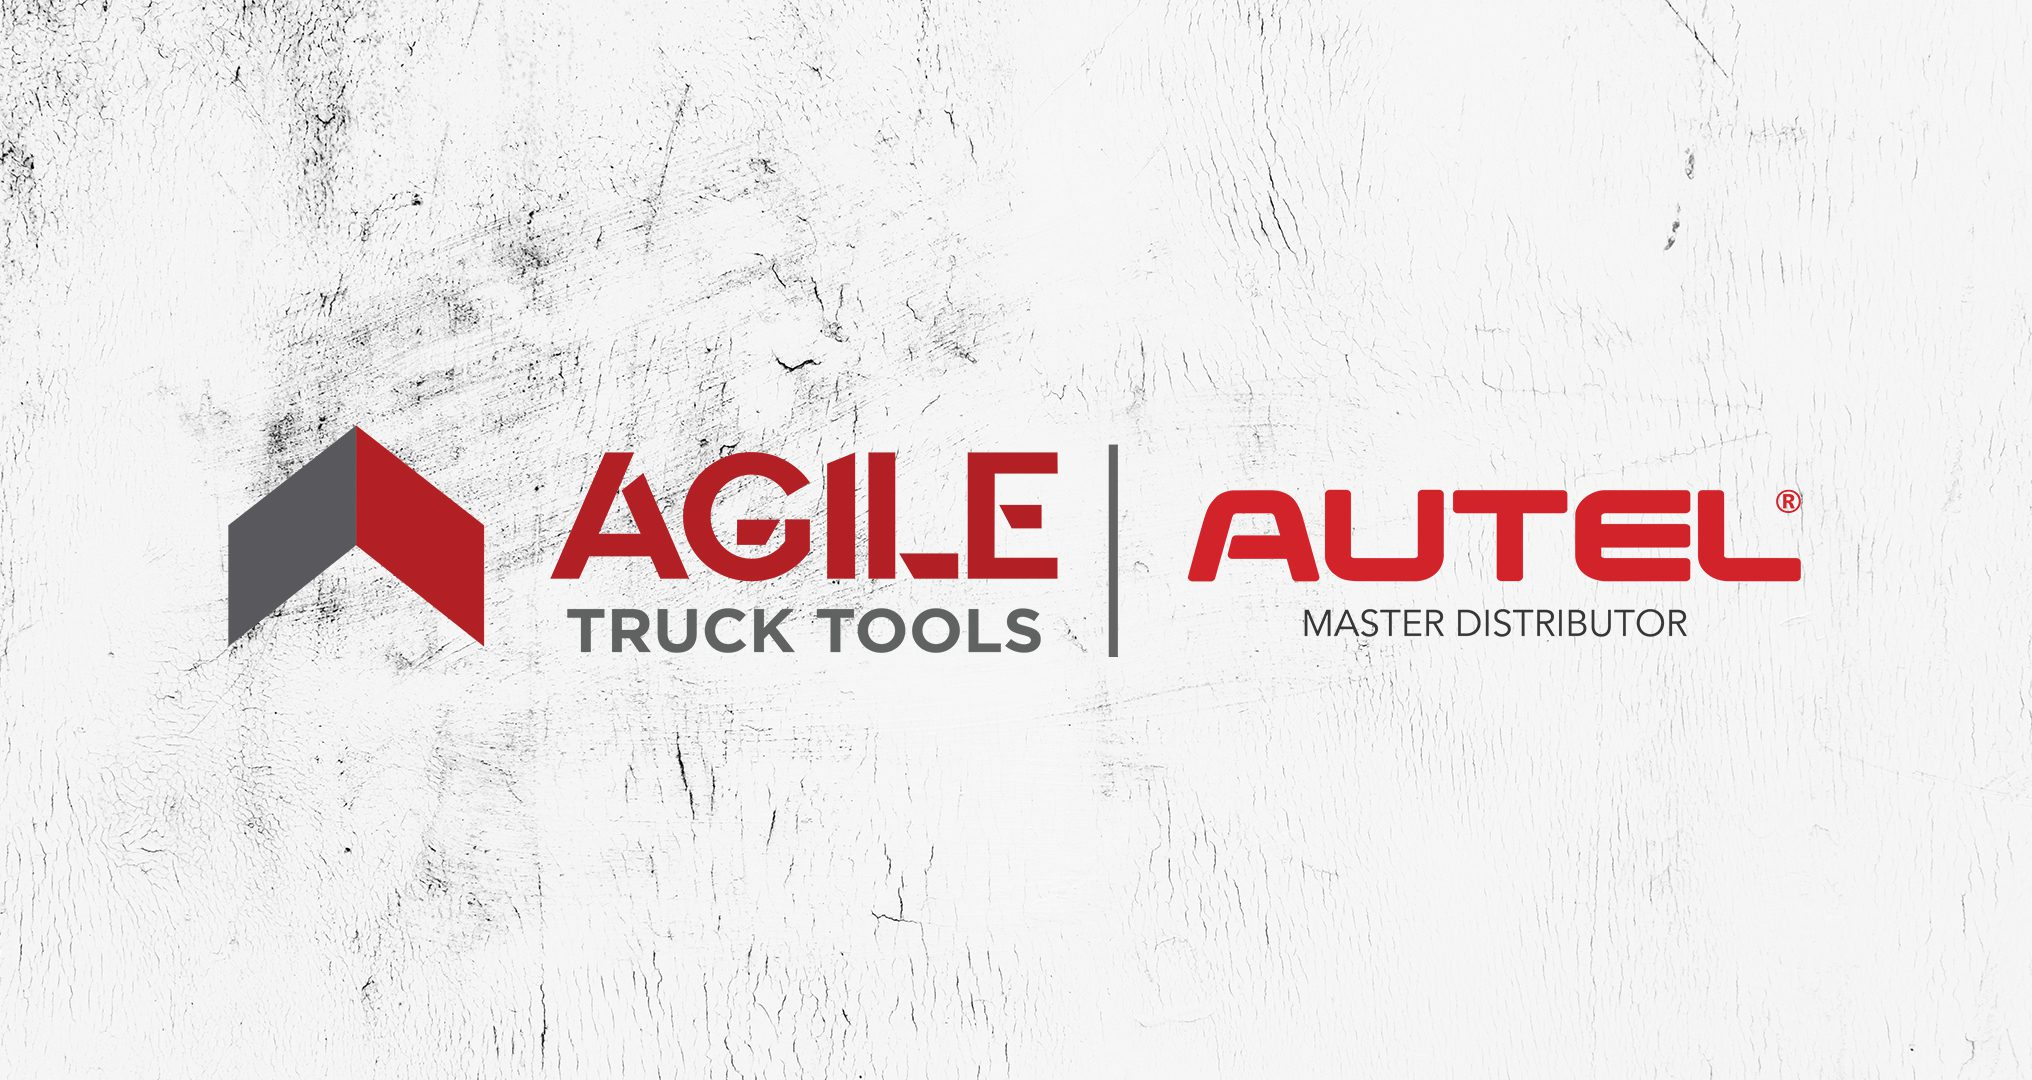 agile truck tools and autel logos